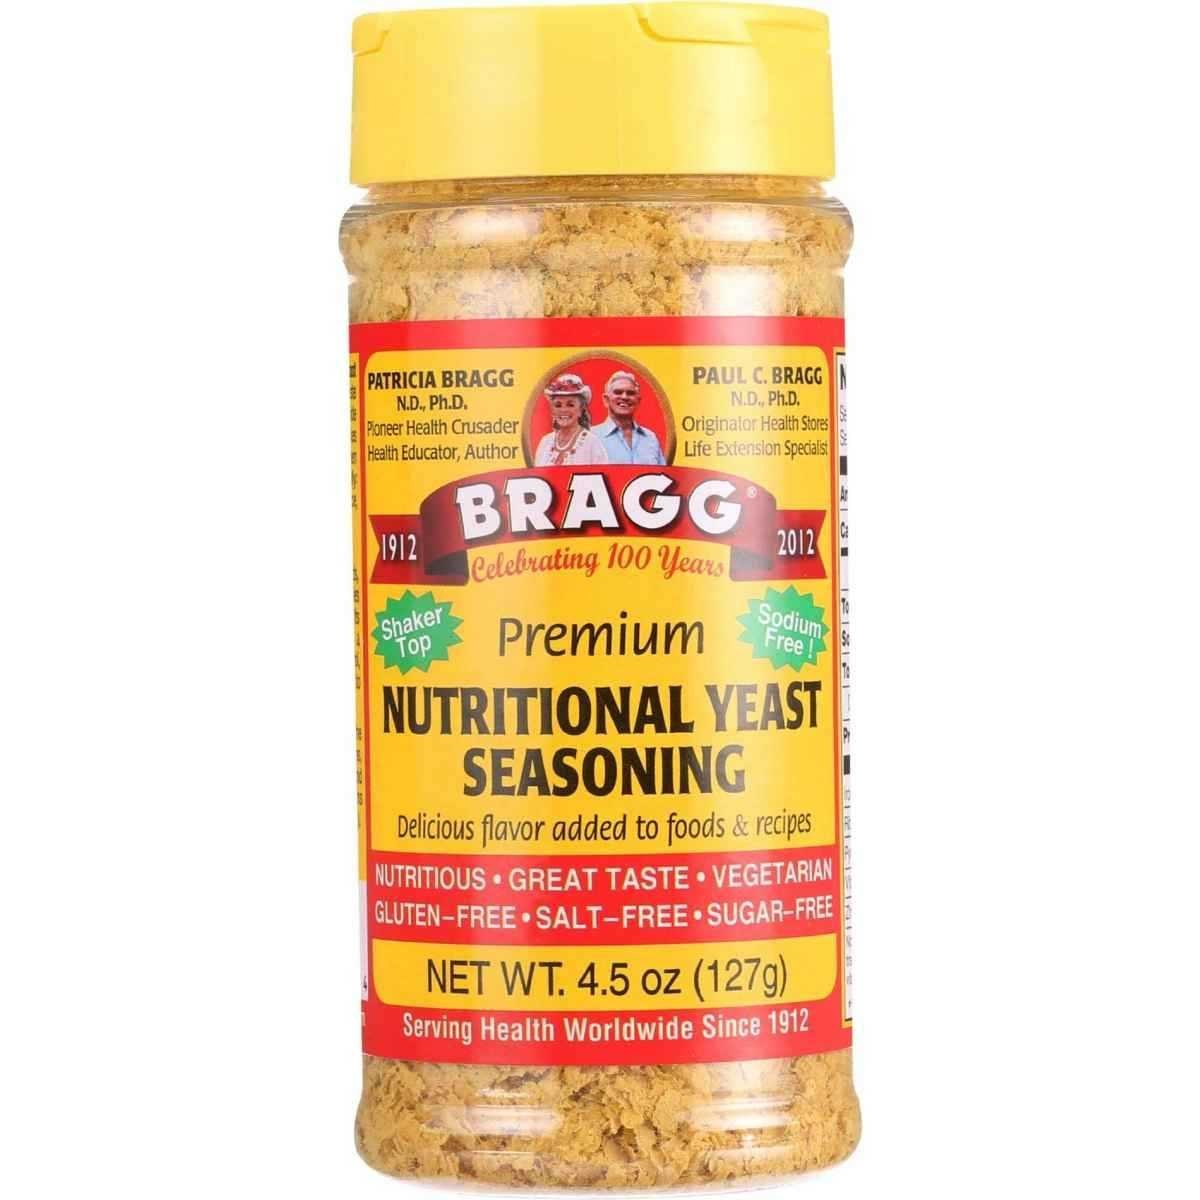 Bragg Seasoning Nutritional Yeast, Pack of 12 - Buy Fast delivery